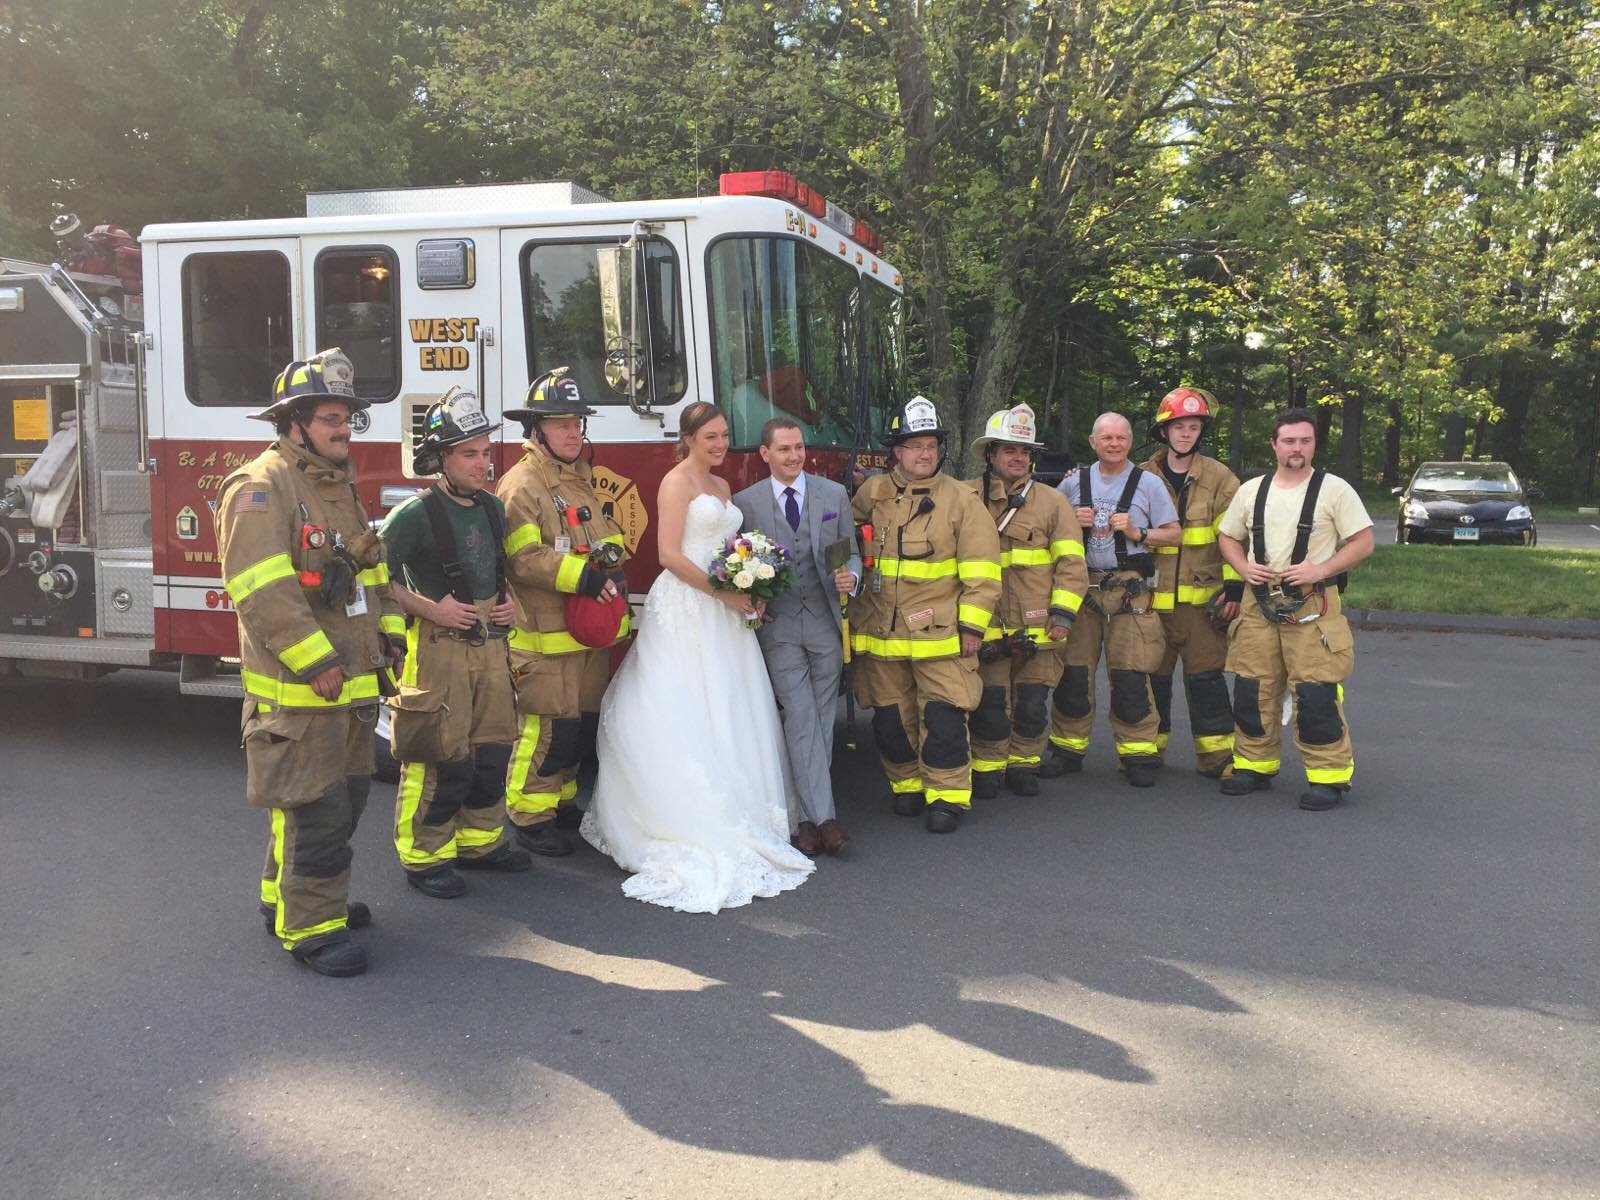 The bride and groom pose with Avon firefighters. (Avon Volunteer Fire Department)